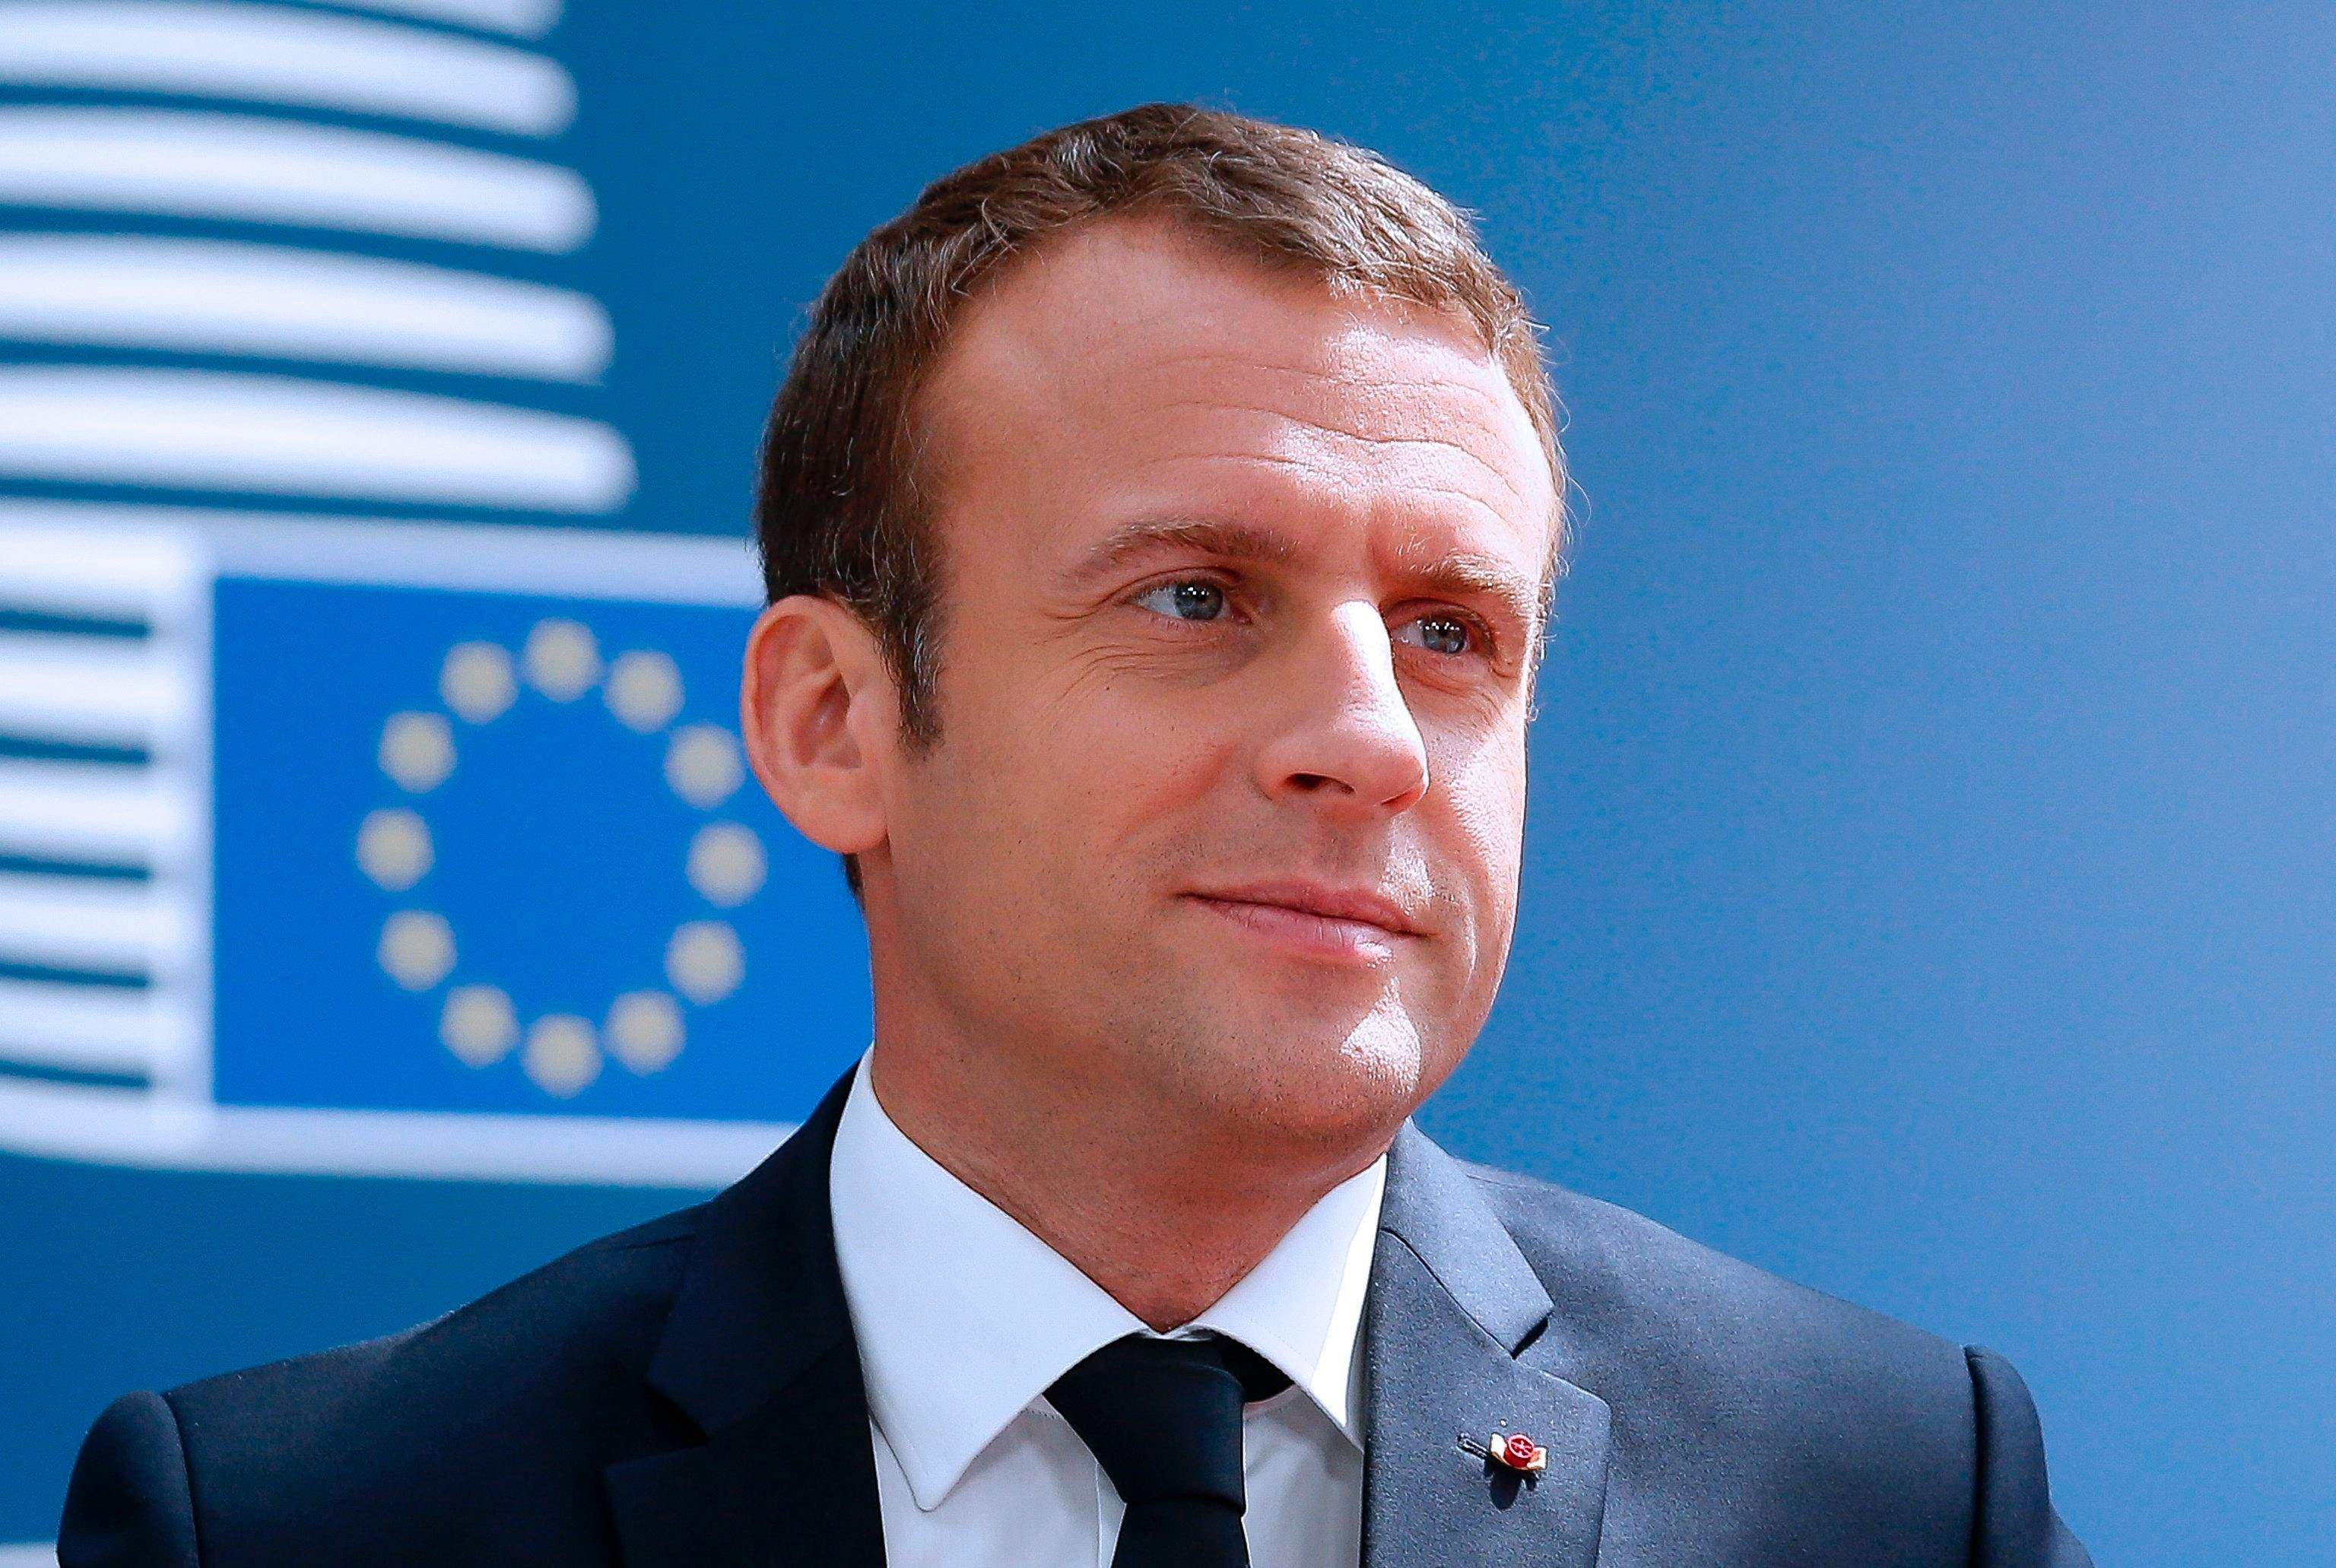 French President Emmanuel Macron arrives for an European Union leaders summit, on June 22, 2017, at the European Council in Brussels. / AFP PHOTO / POOL / JULIEN WARNAND        (Photo credit should read JULIEN WARNAND/AFP/Getty Images)